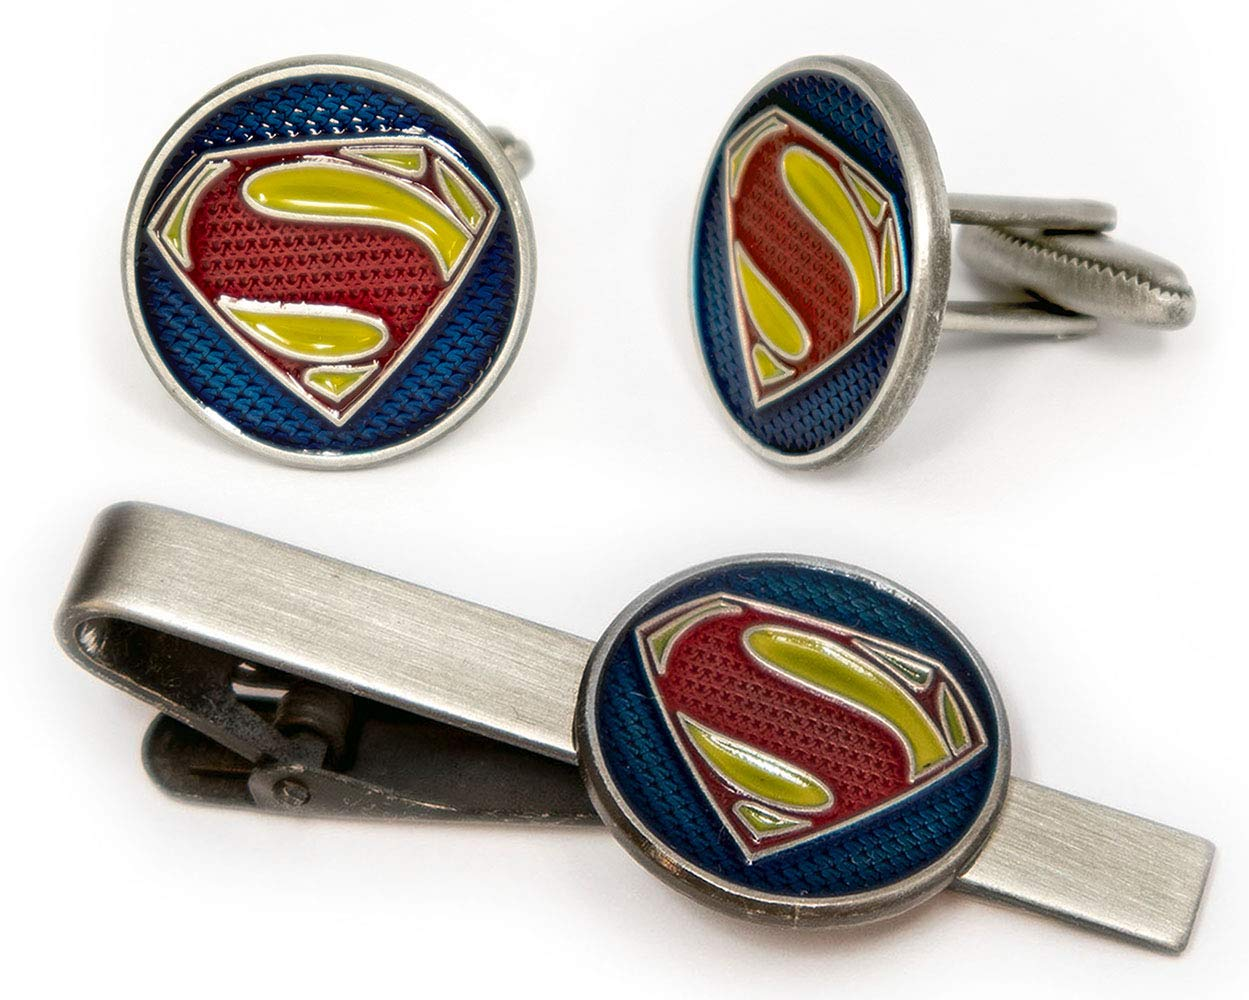 SharedImagination Superman Tie Clip, Krypton Cufflinks, DC Comics Batman vs Superman Tie Tack Jewelry, Nightwing Cuff Links Link Wedding Party Gift, Young Justice League Avengers Groomsmen Gifts